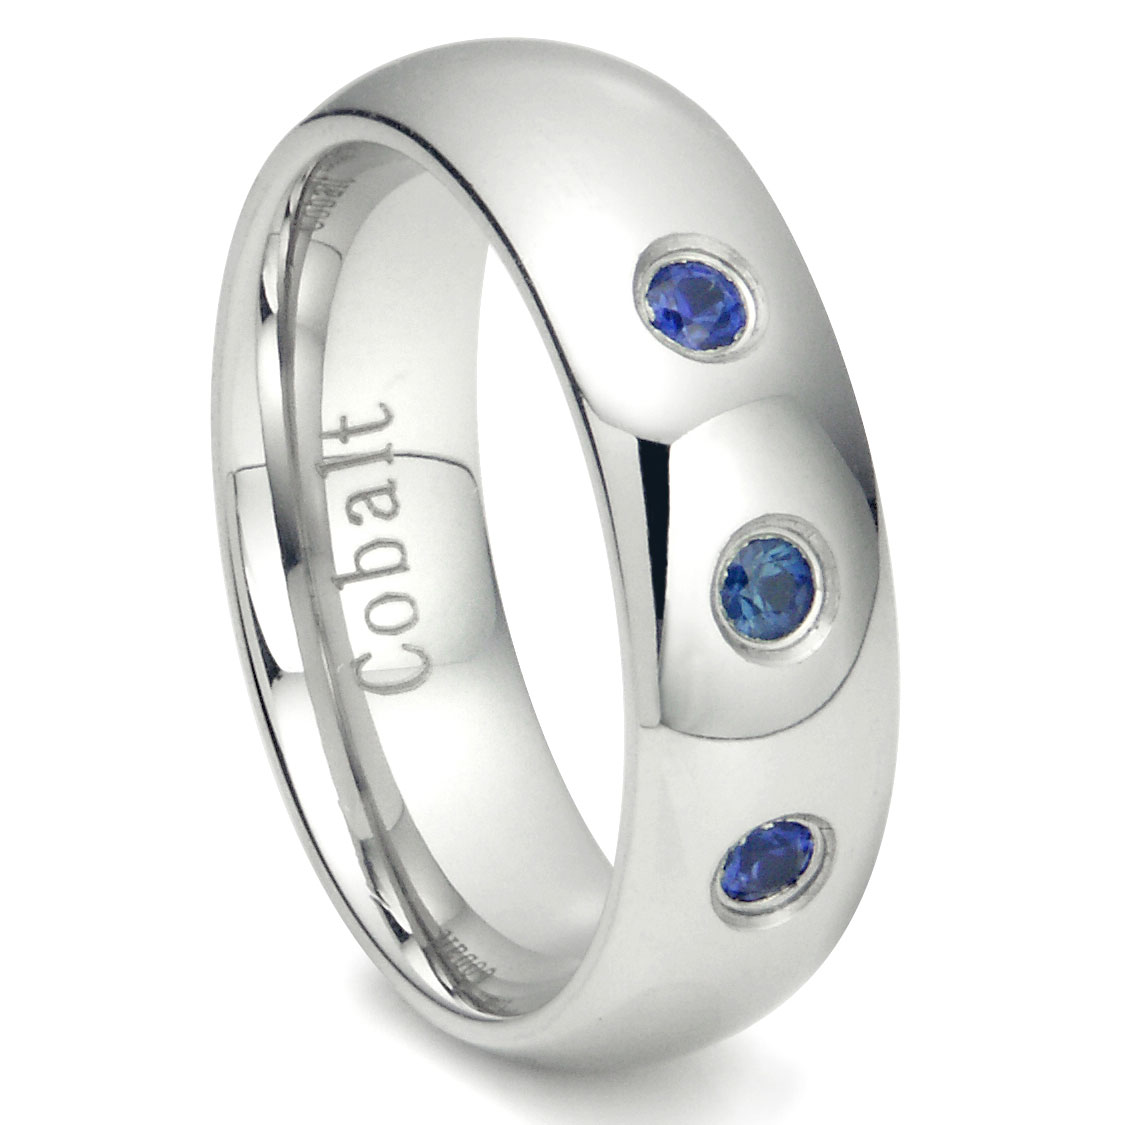 Cobalt Chrome 7MM 3 Blue Sapphire Domed Wedding Band Ring P cobalt wedding bands Home Cobalt Rings Loading zoom